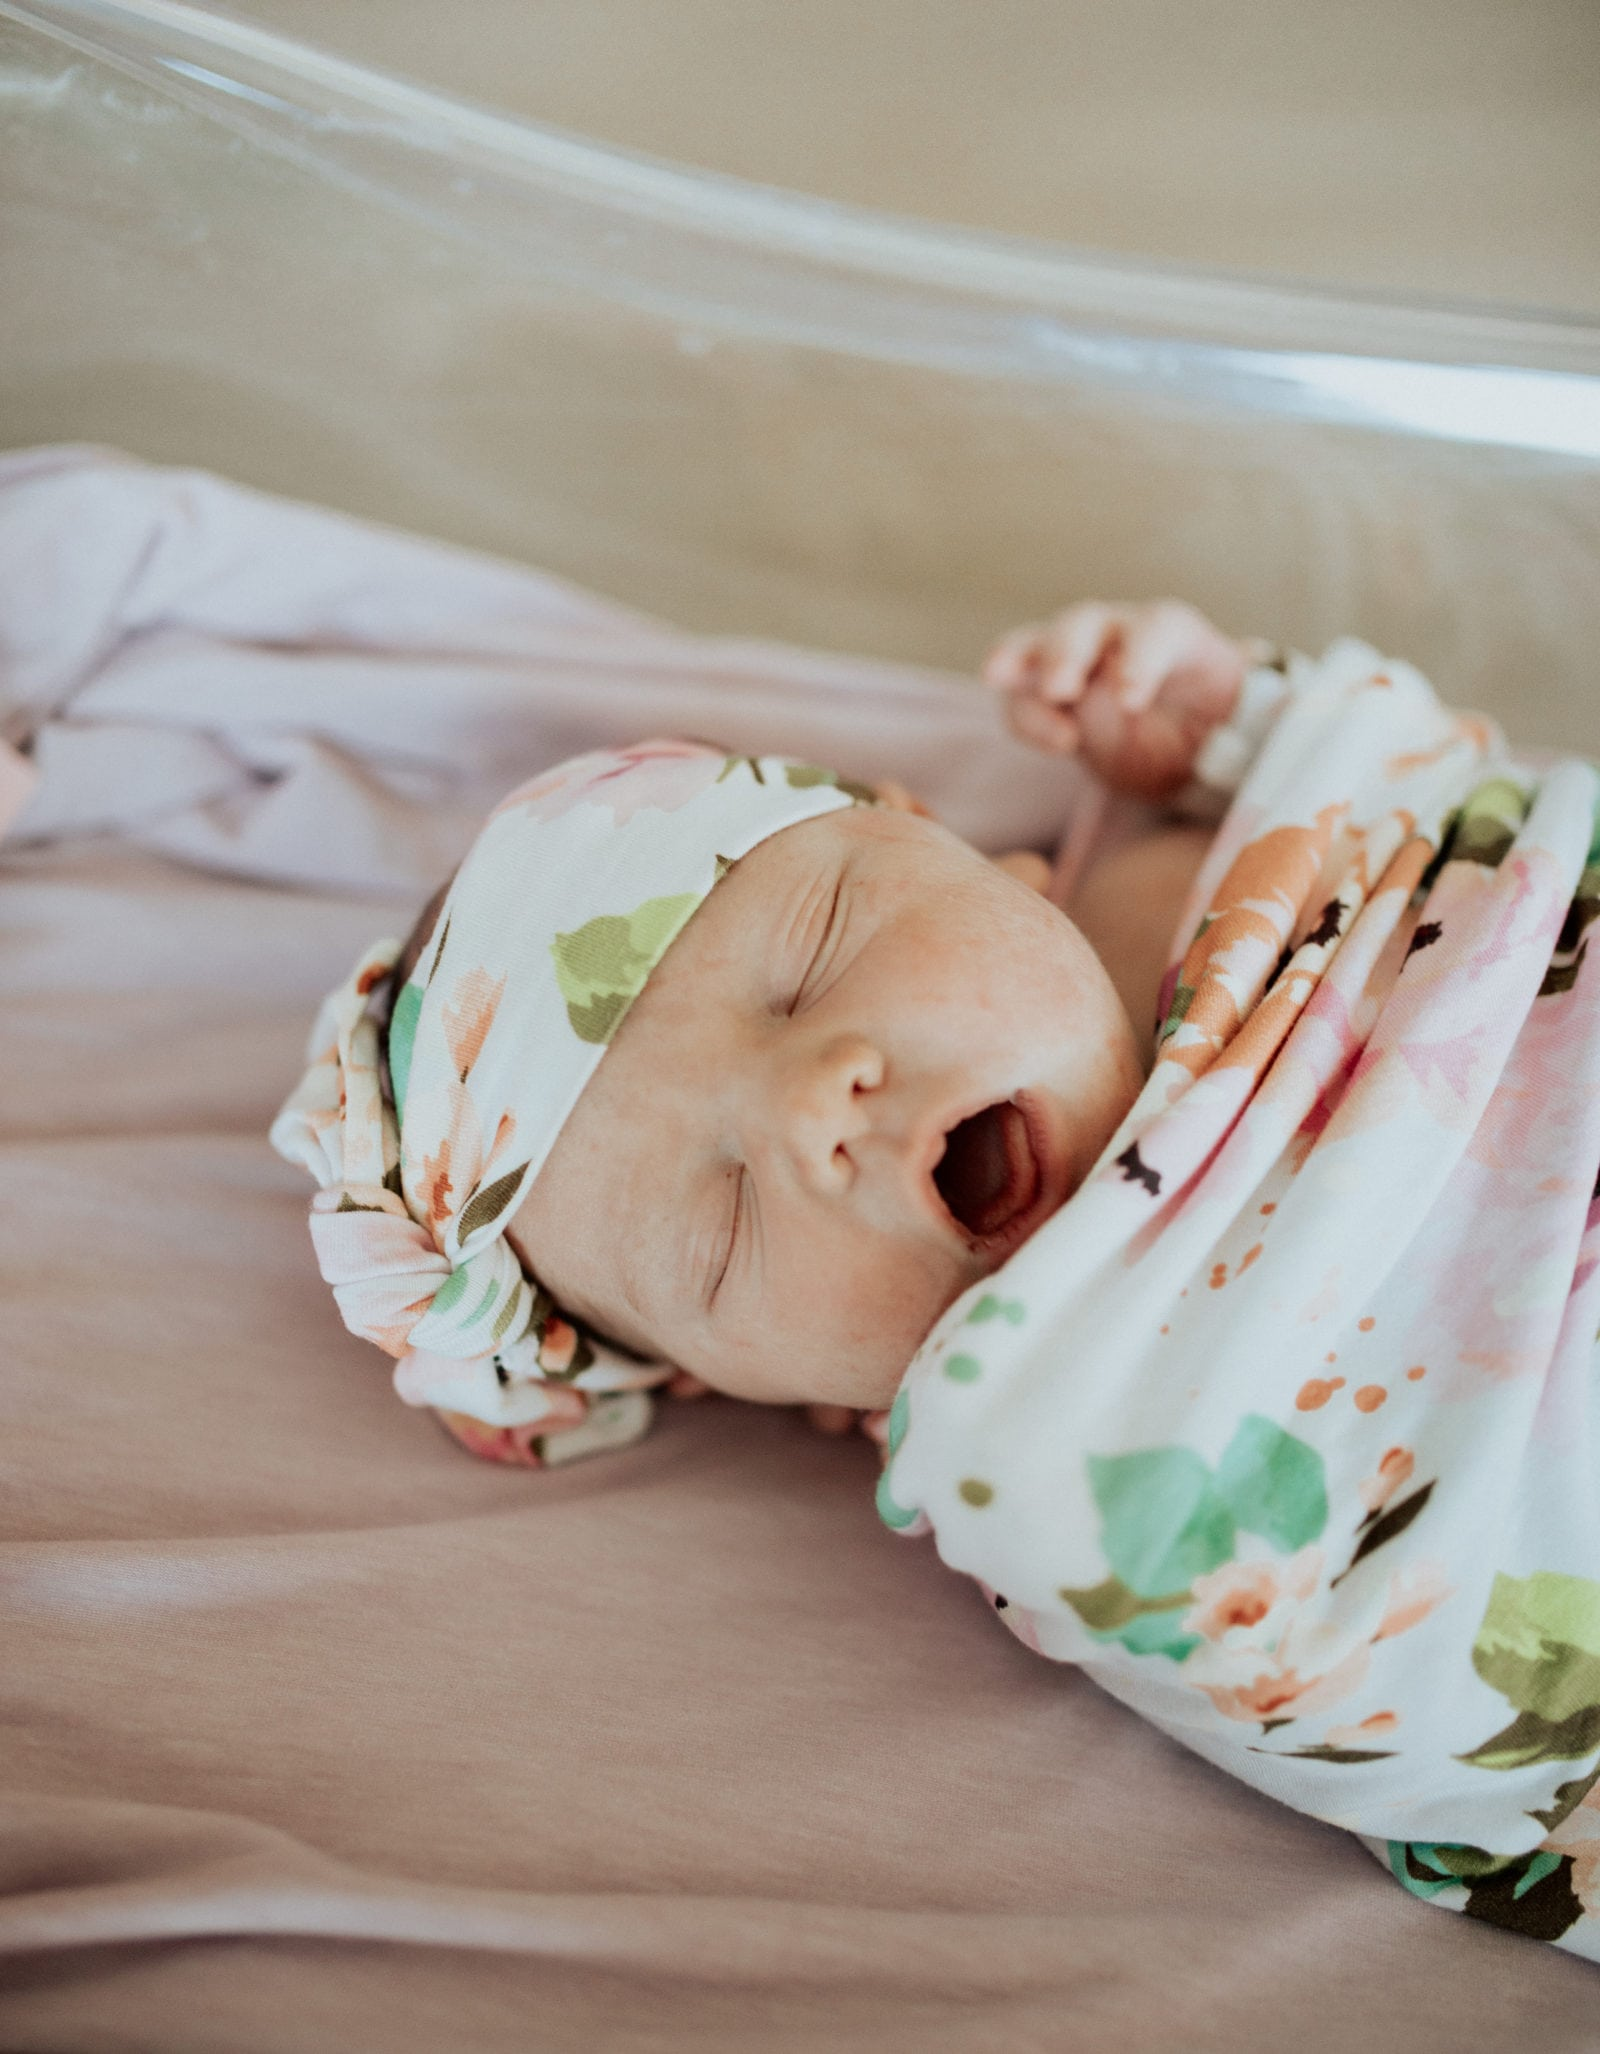 Baby's Outfit: Winter Peony Swaddle Set